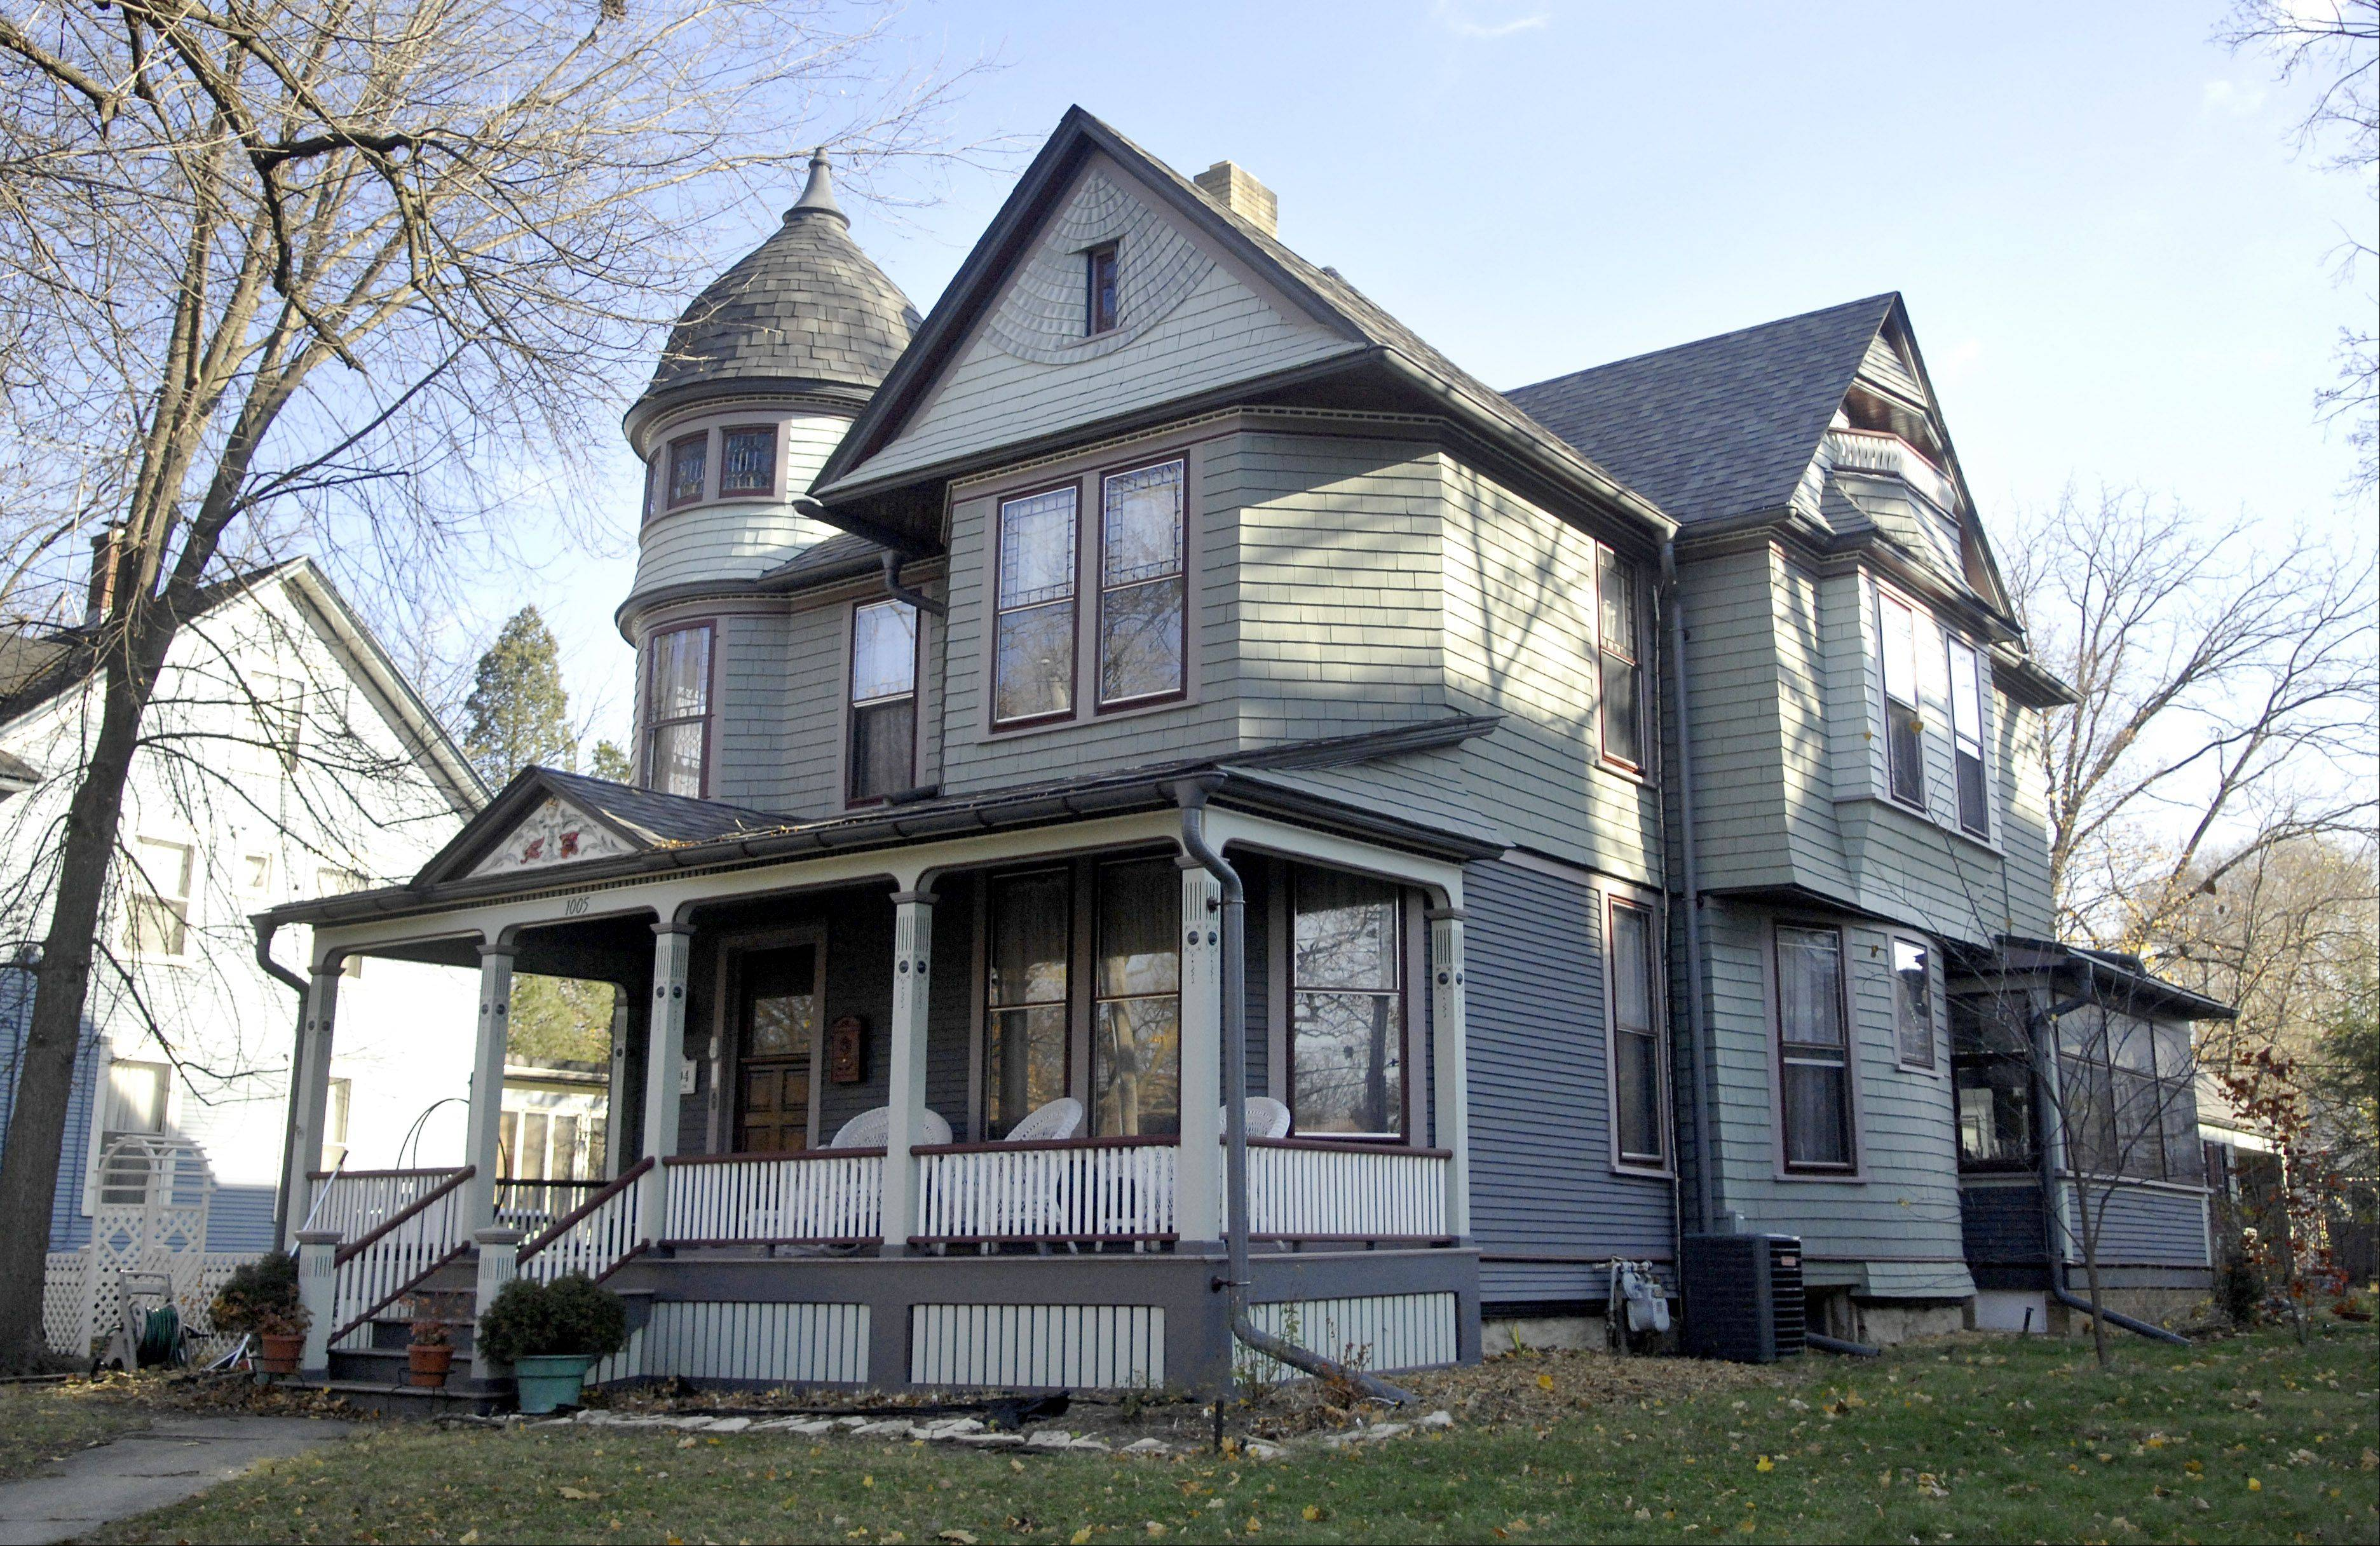 The home of Patricia Harkin and James Sosnoski at 1005 N. Spring St., Elgin, will be on this year's Homes for the Holidays House Walk, sponsored by the North East Neighborhood Association.